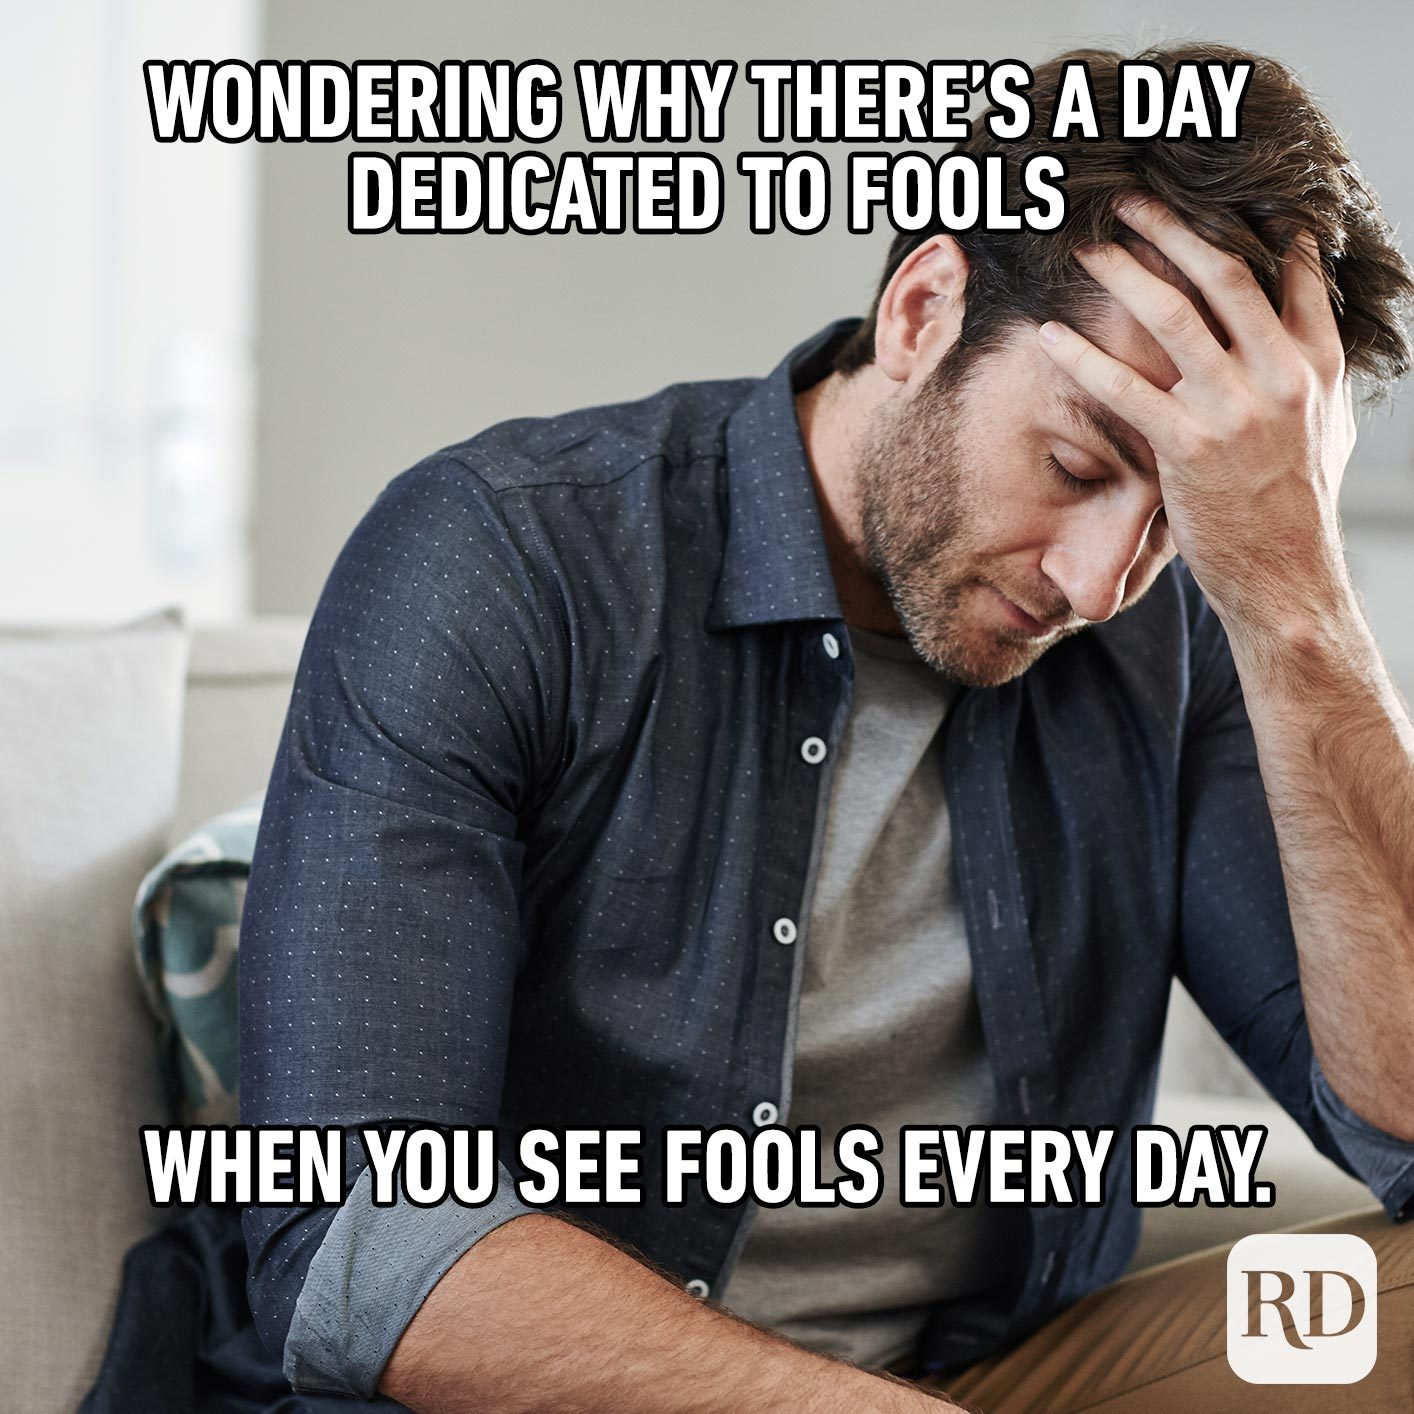 Man with head in his hands. Meme text: Wondering why there's a day dedicated to fools when you see fools every day.